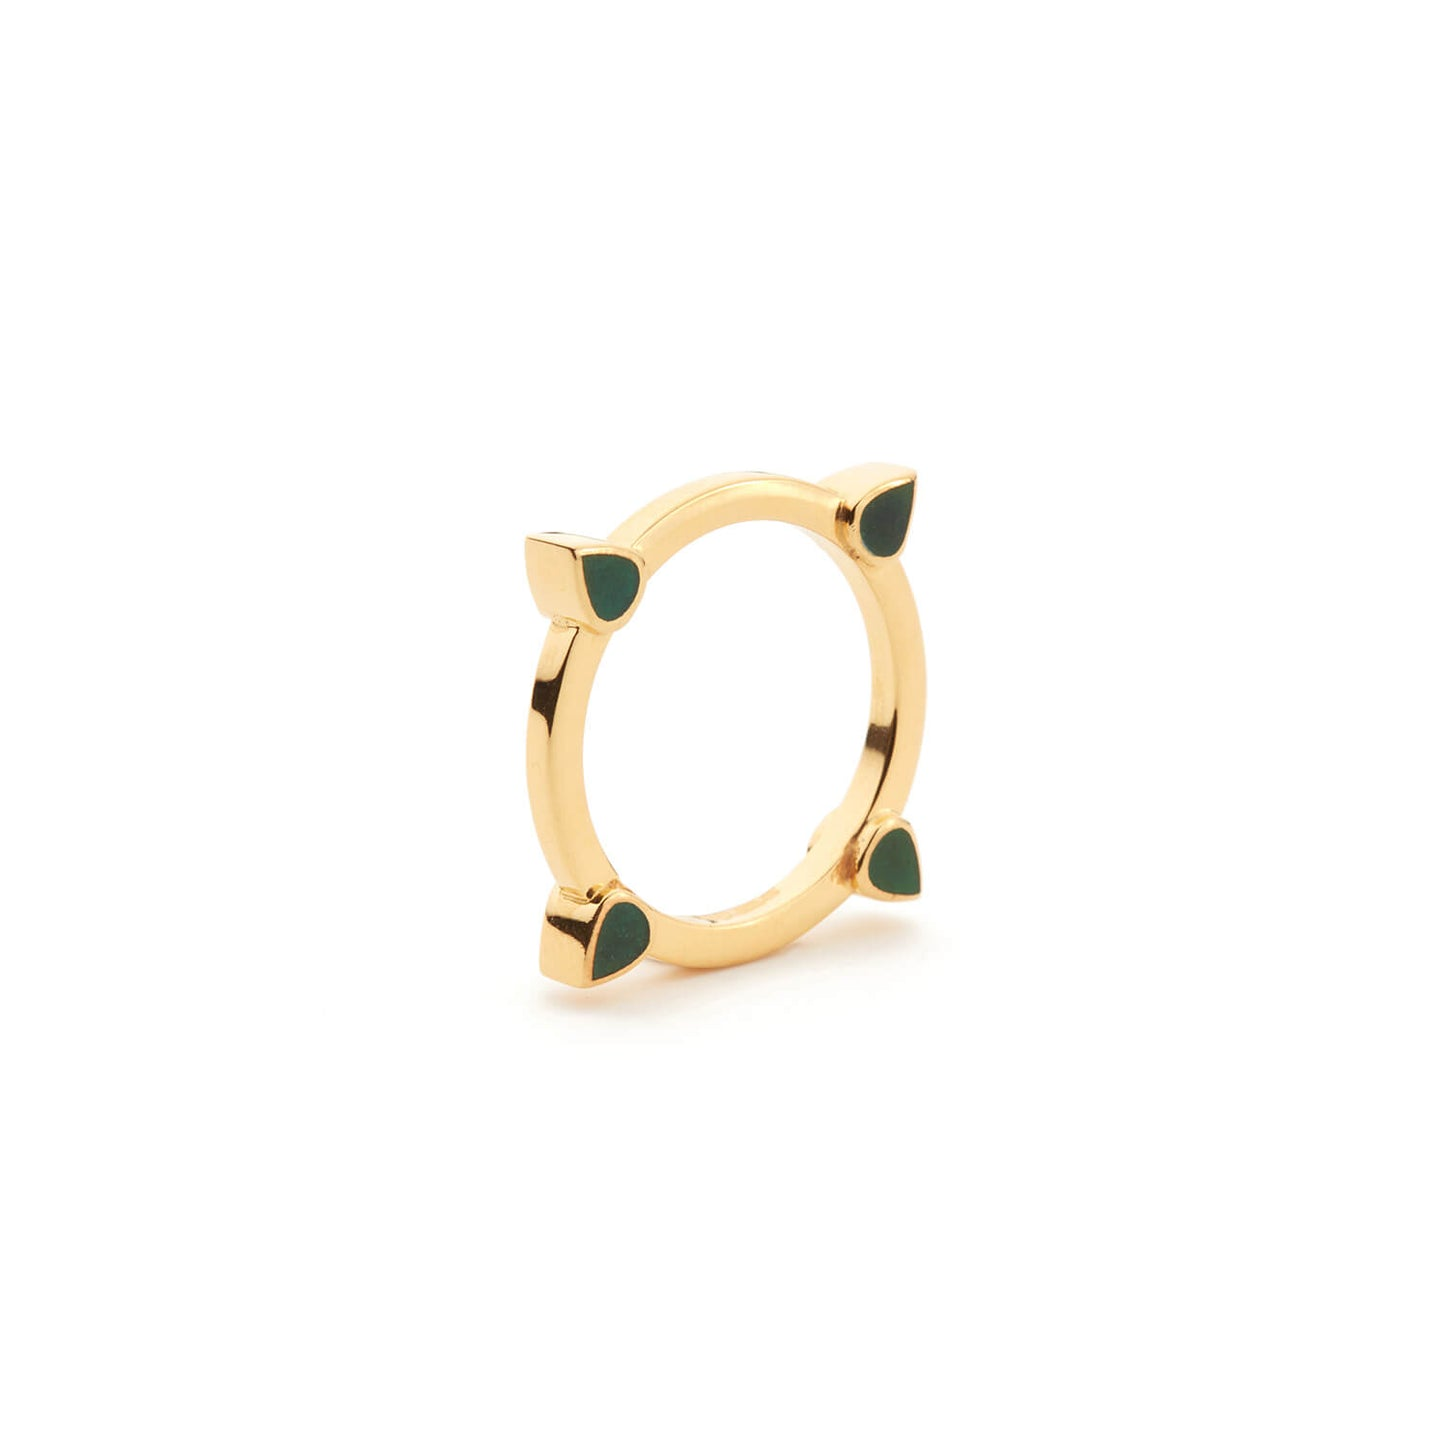 Gold Bond Street Ring with Green Enamel